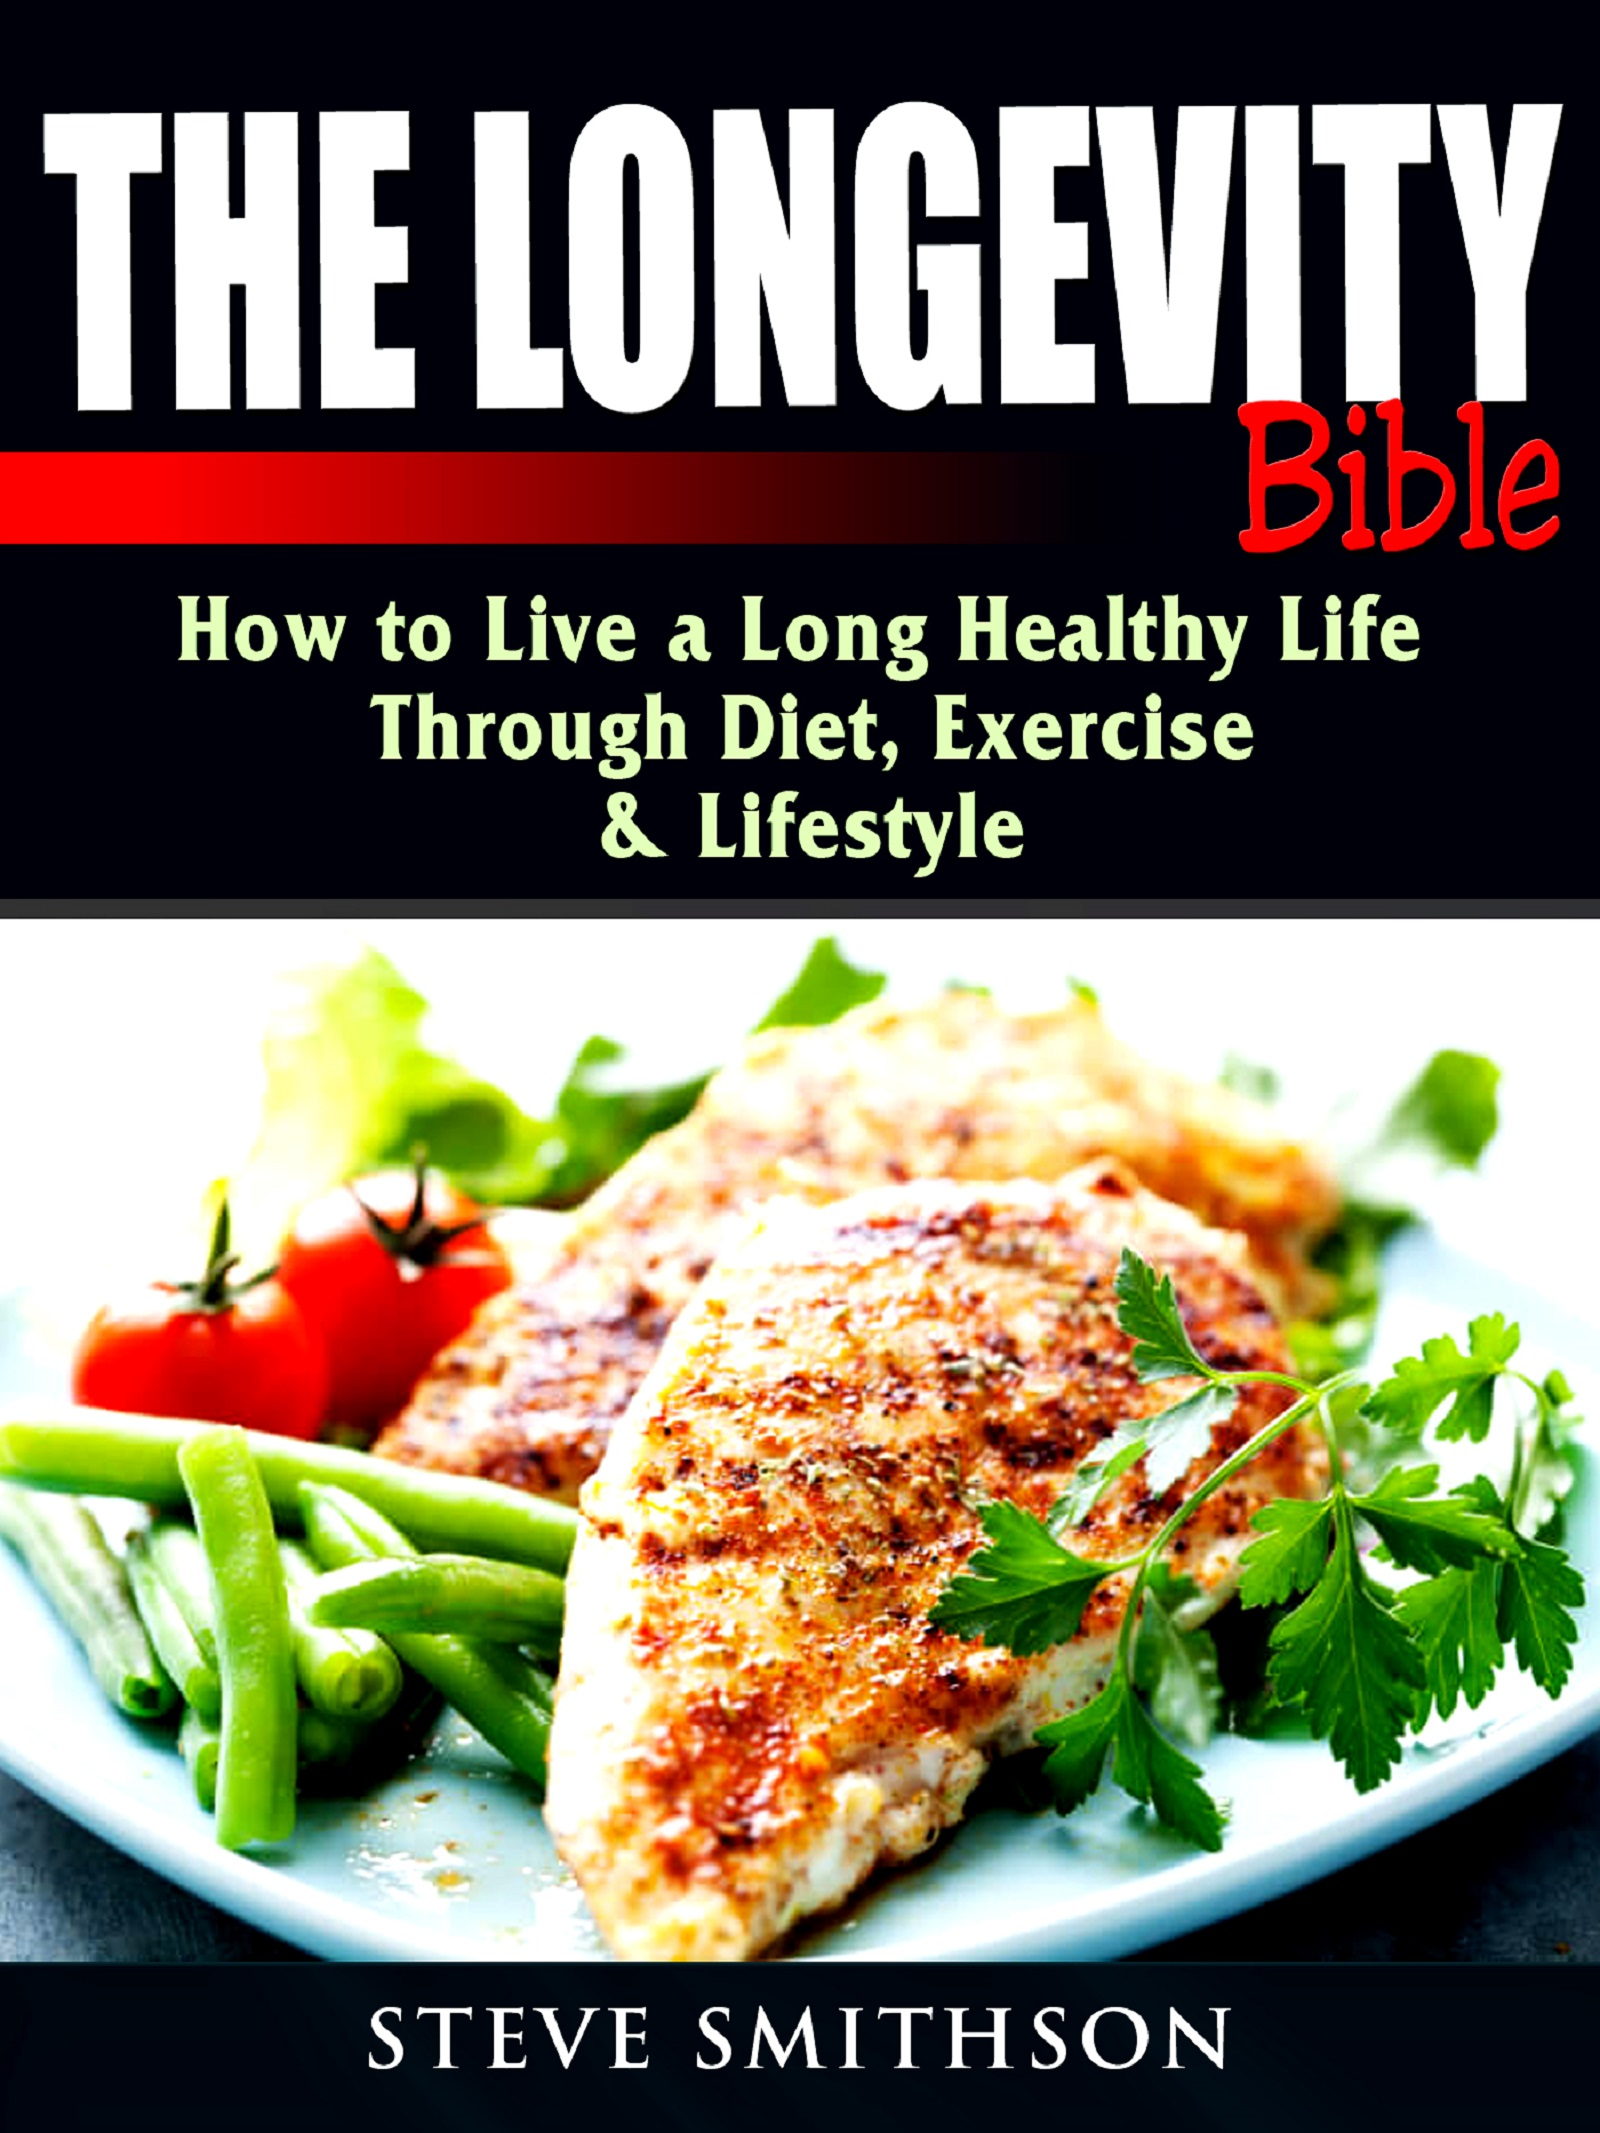 The longevity bible: how to live a long healthy life through diet, exercise, & lifestyle